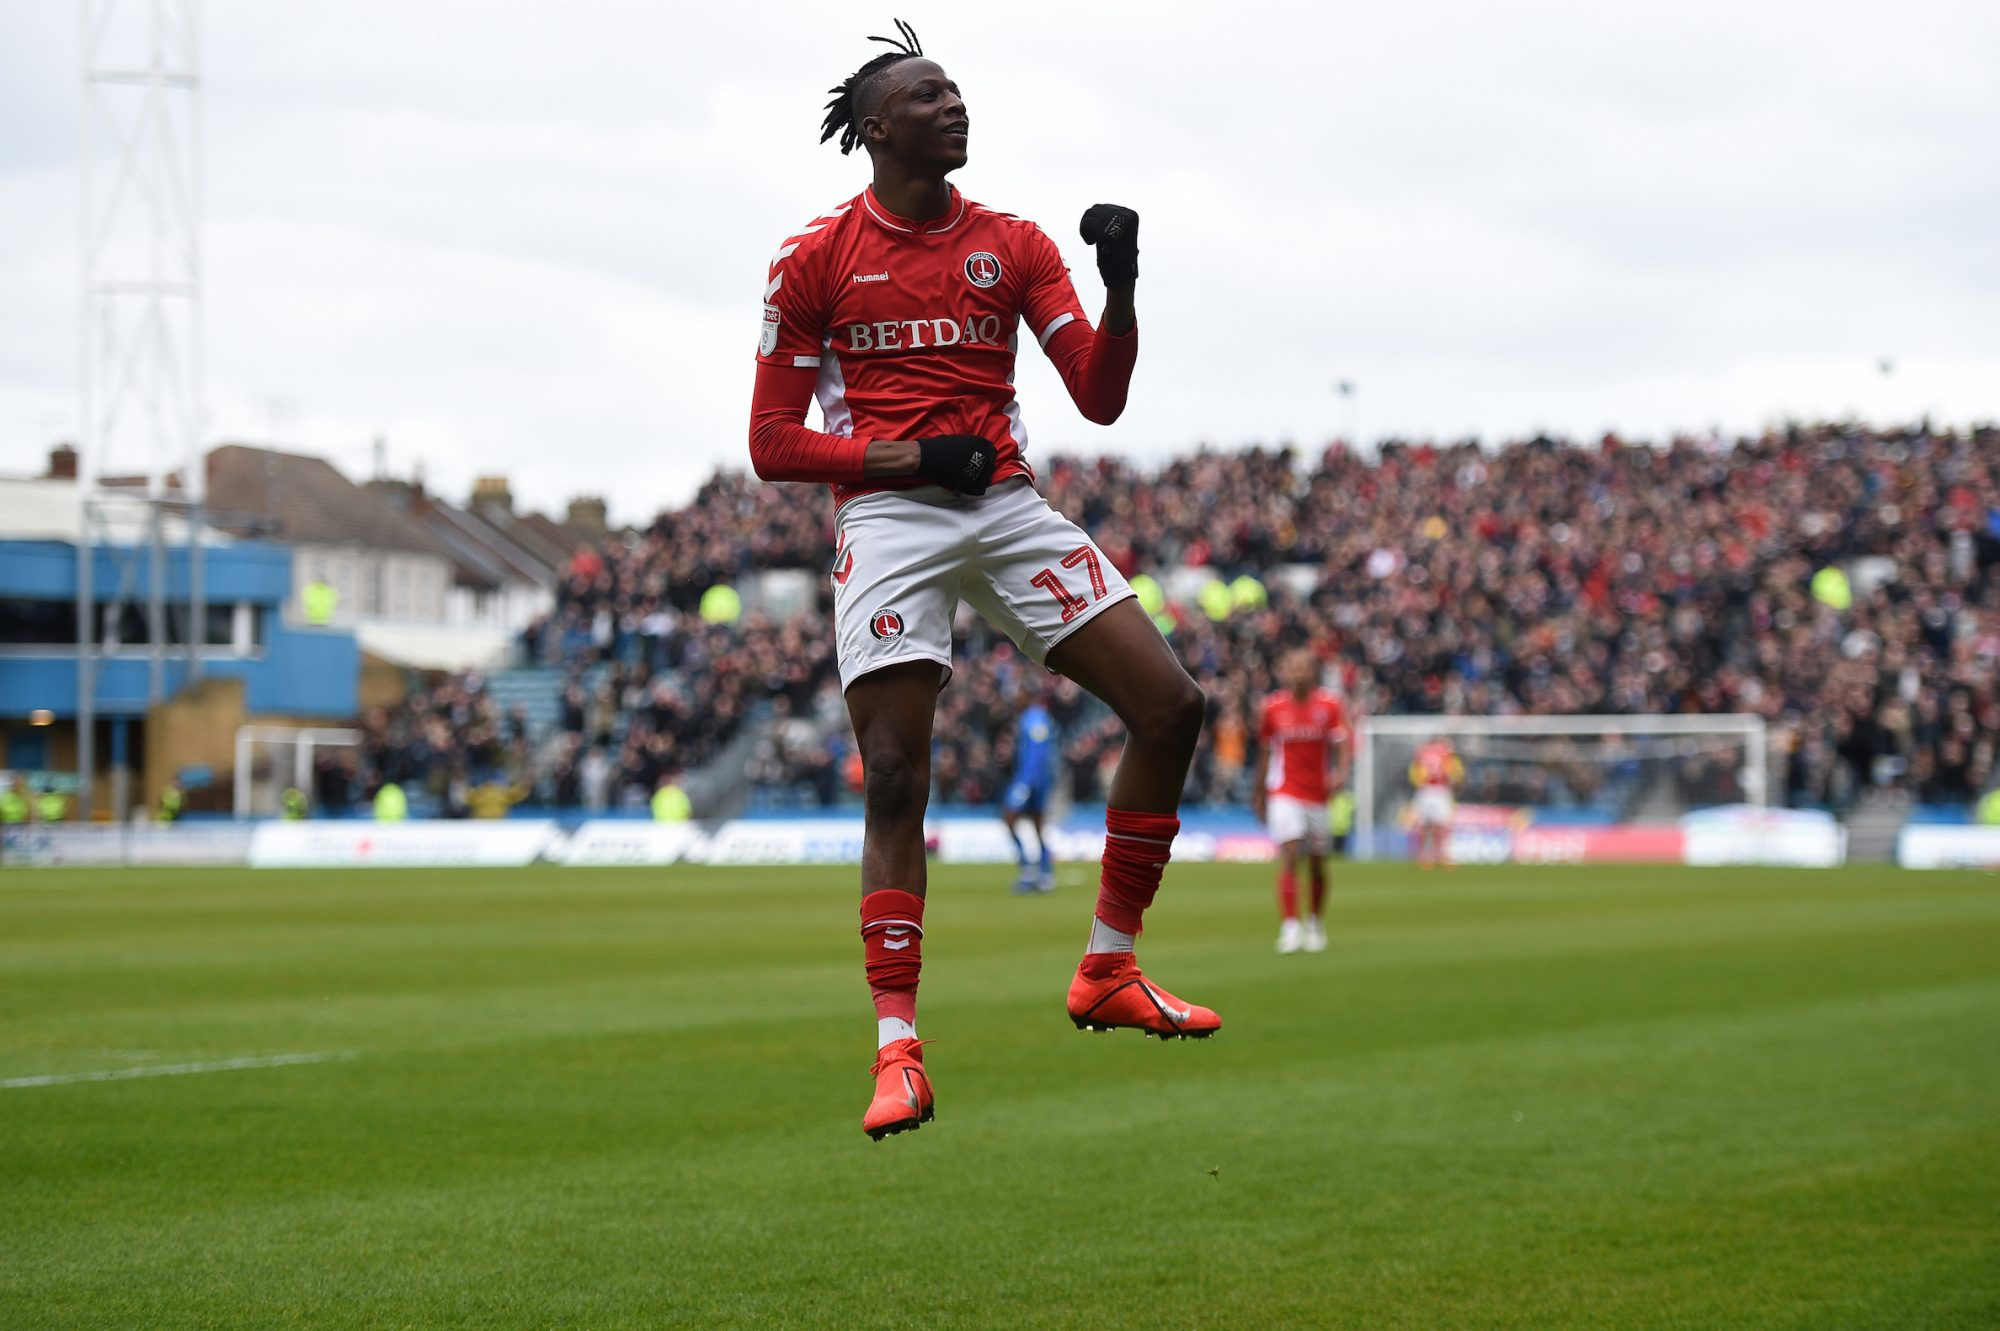 e8c23e5329e Charlton Athletic s Joe Aribo celebrates scoring his side s first goal of  the game